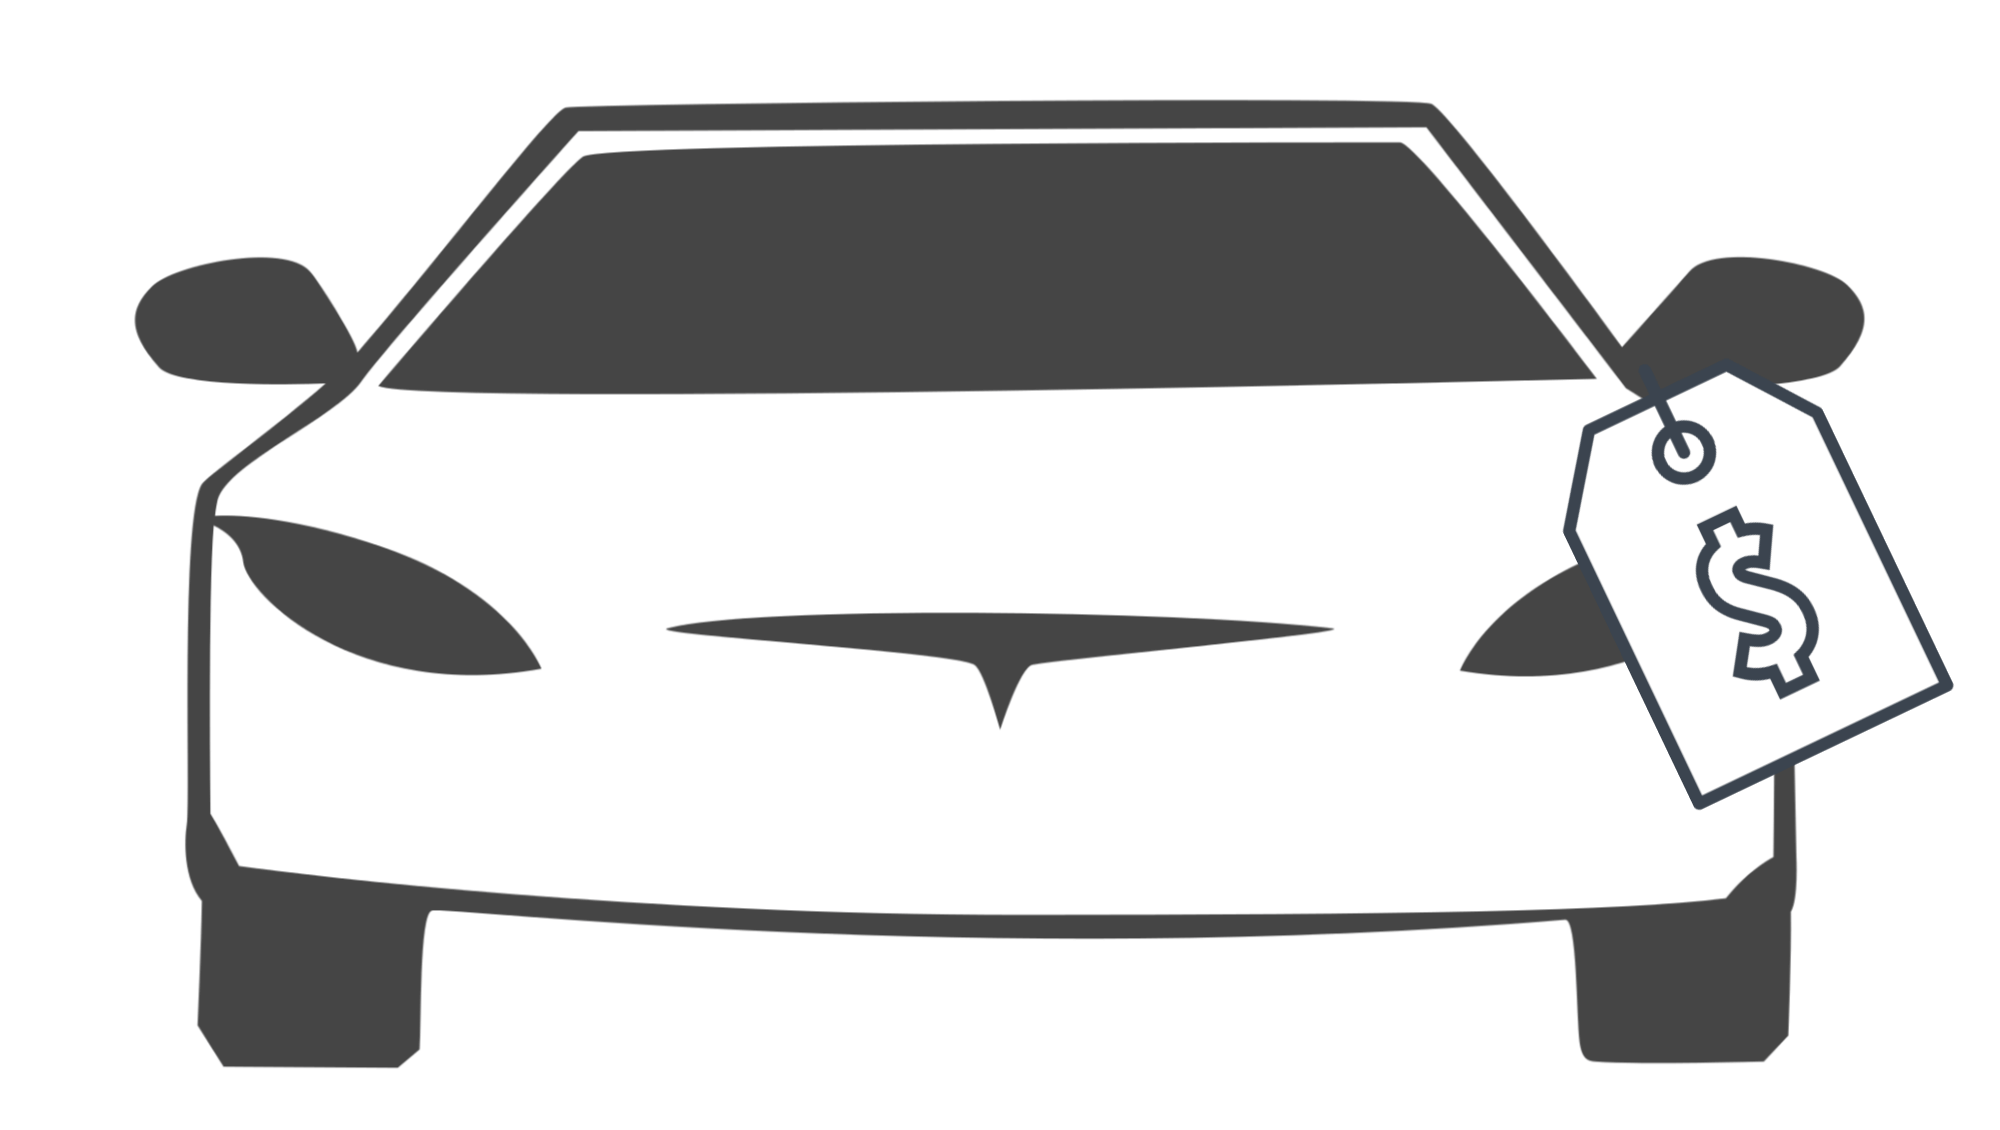 car graphic with price tag